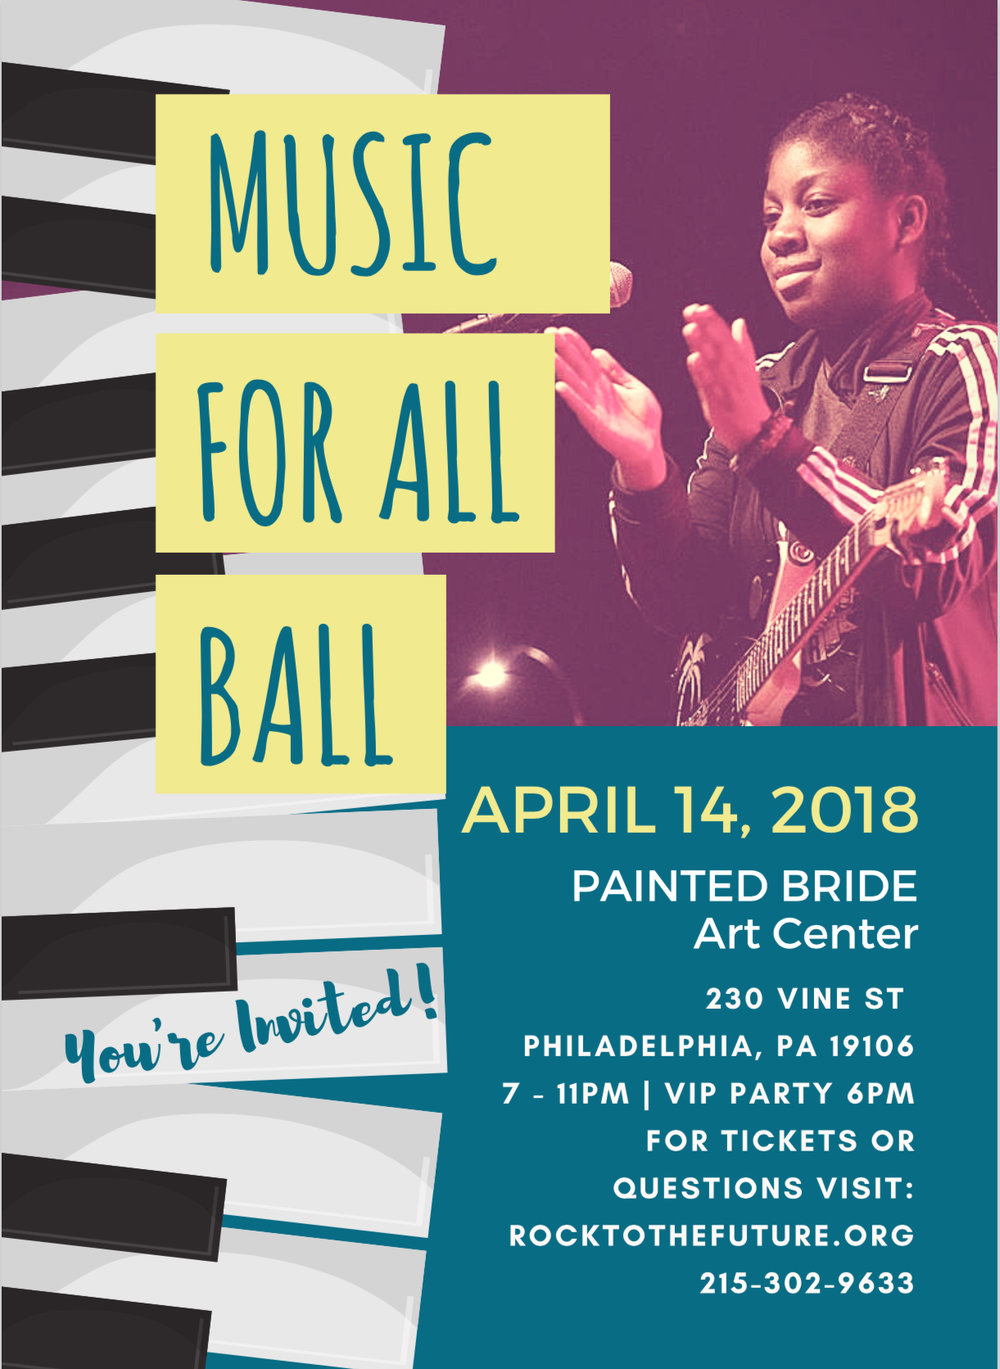 April 14th, 2018 - Music For All Ball Painted Bride Art Center230 Vine St Philly7-11pm | VIP Party 6pm   -